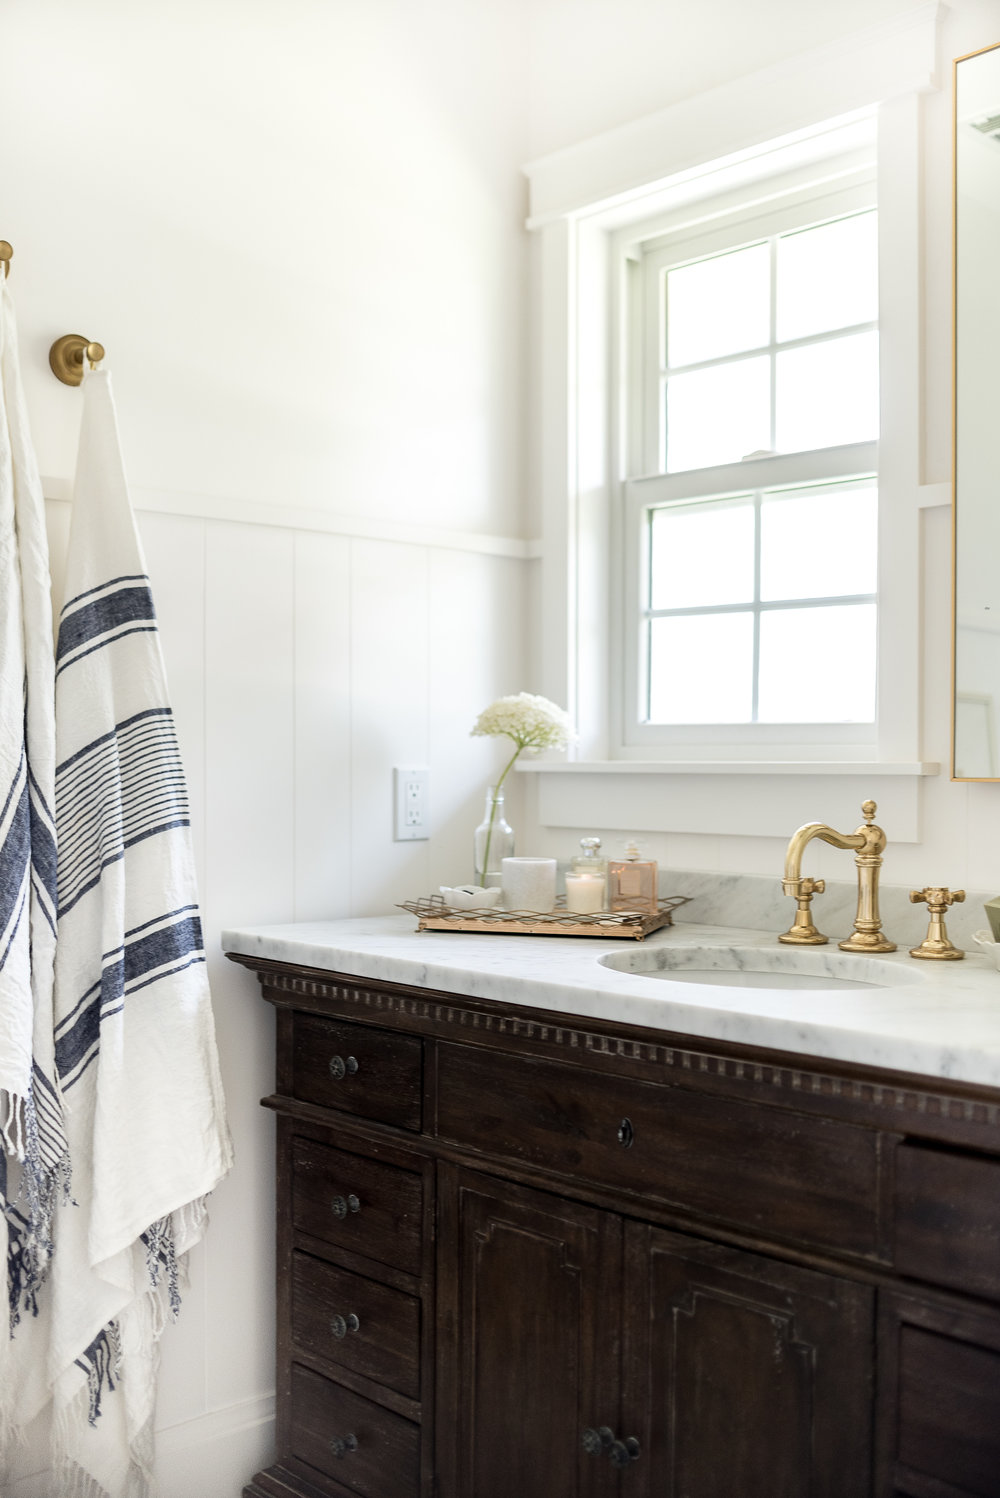 Marble & white bathroom with antique brass hardware | boxwoodavenue.com